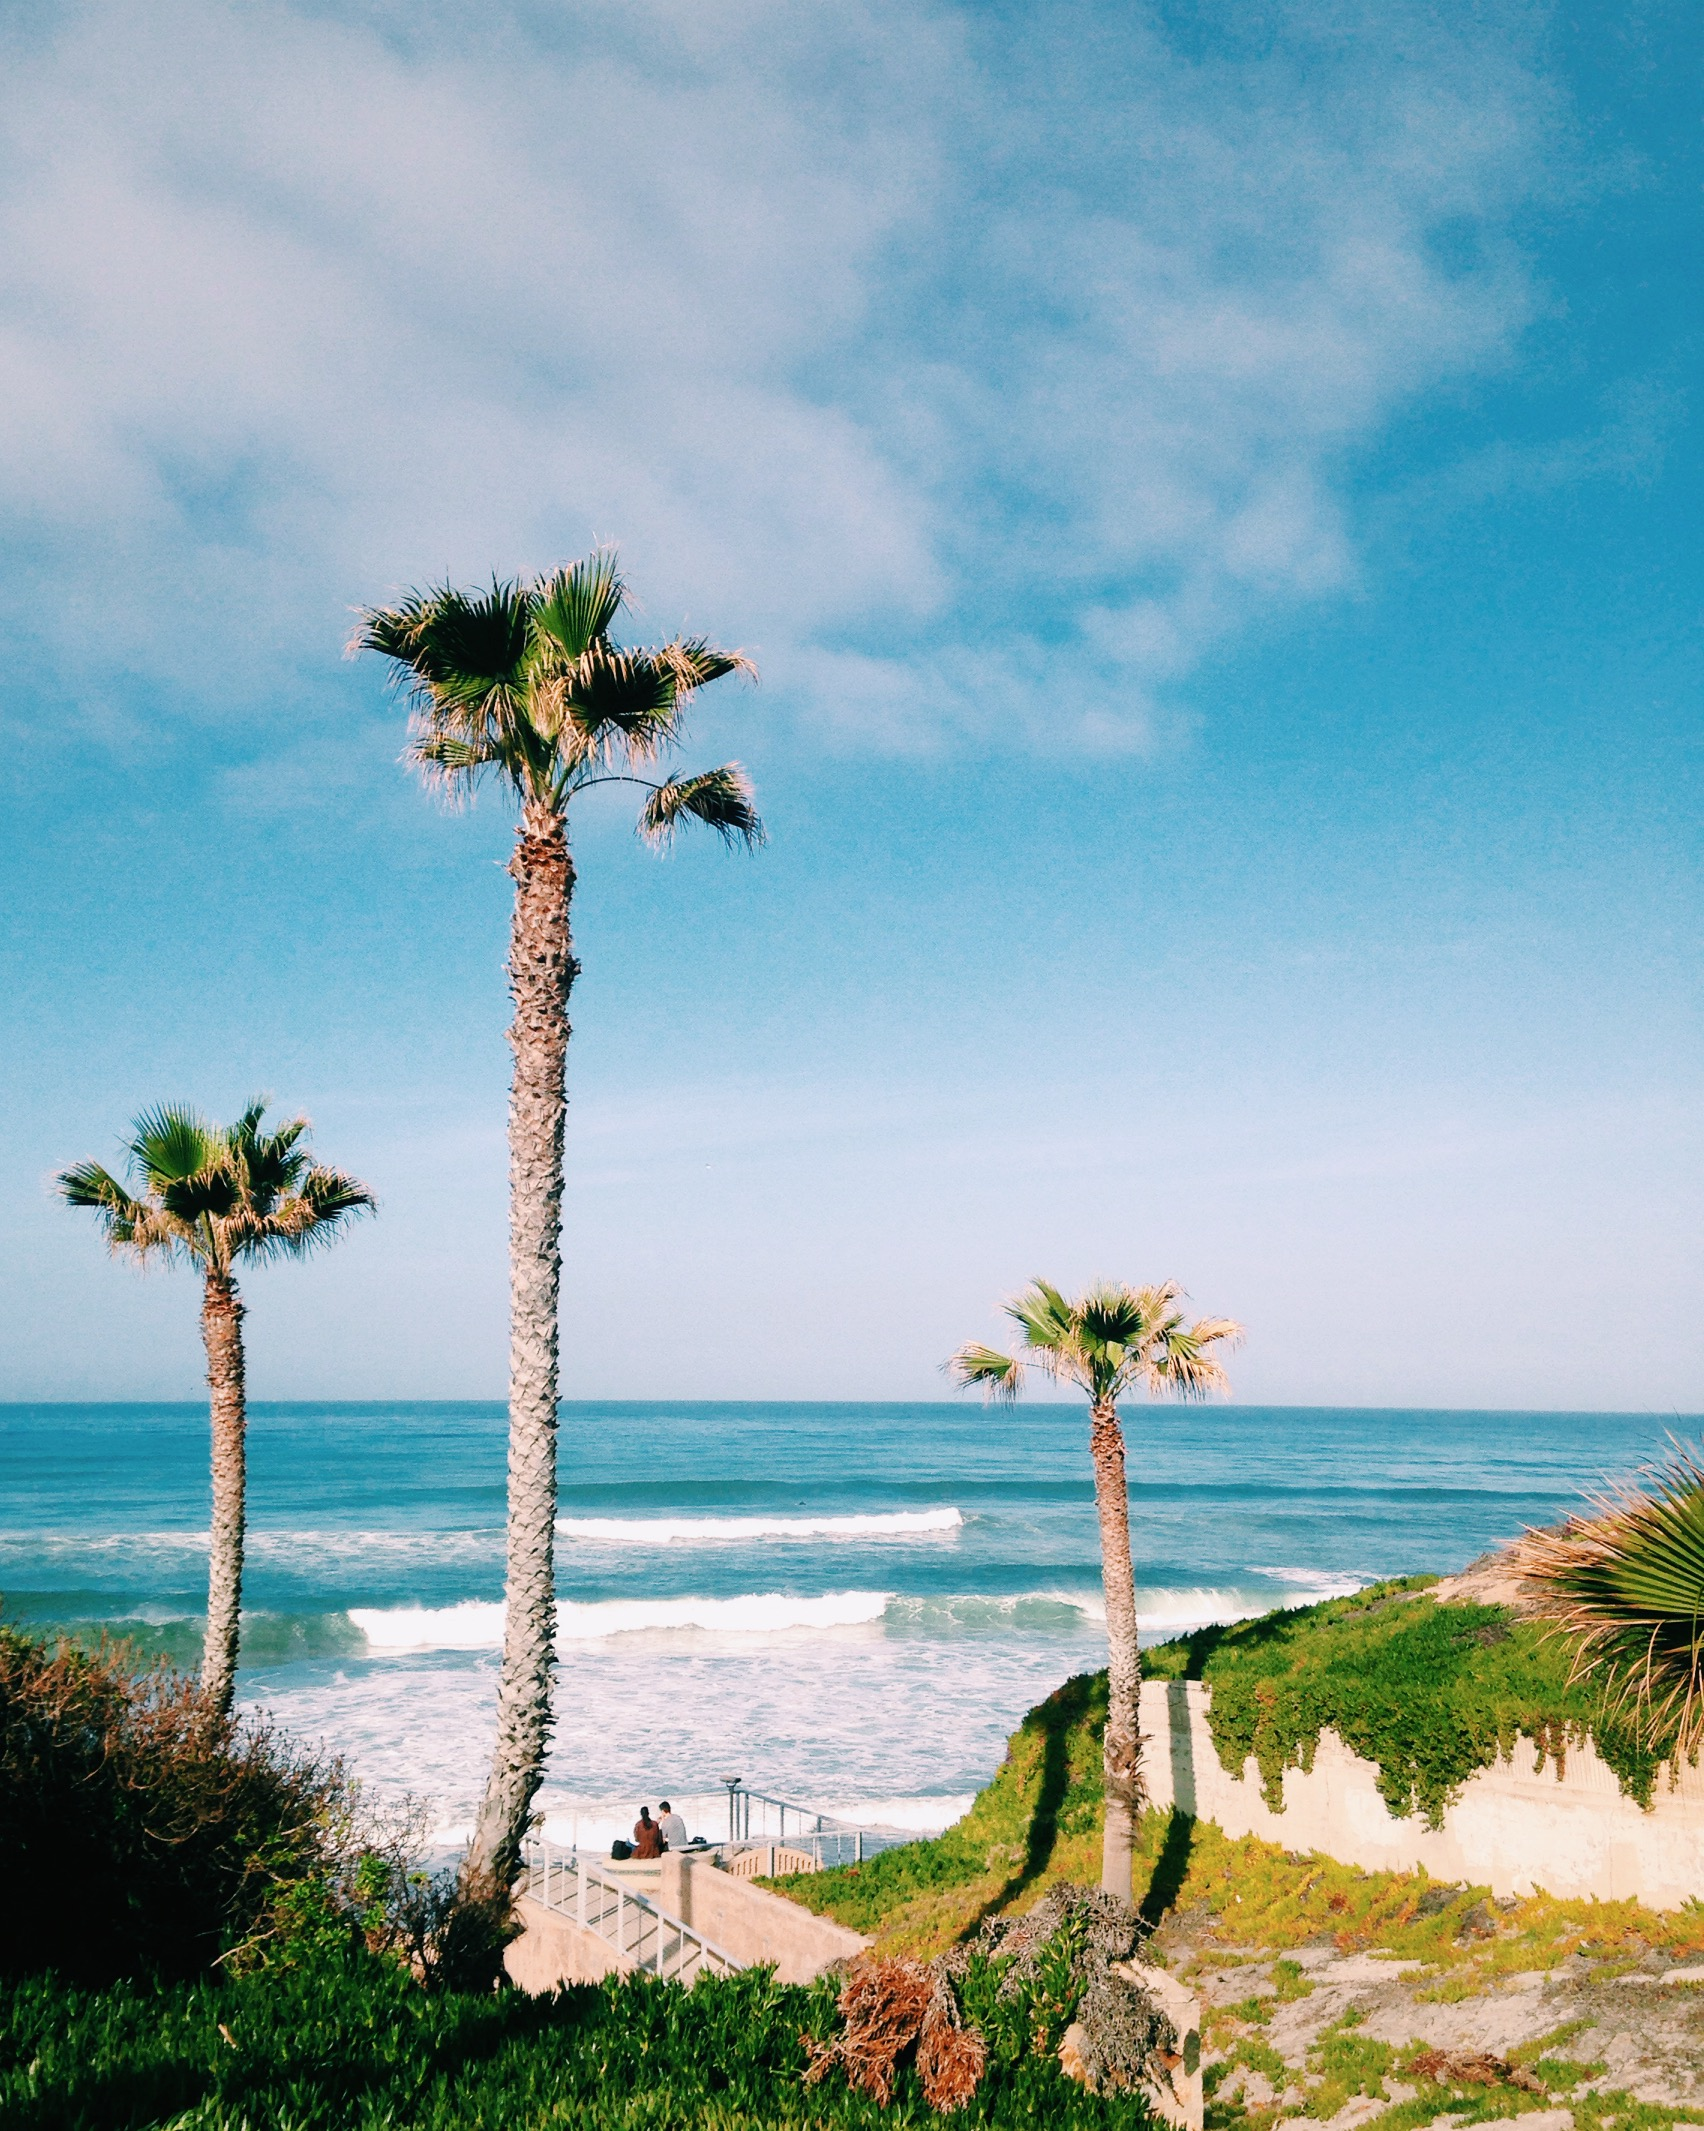 Fletcher Cove in Solana Beach, California